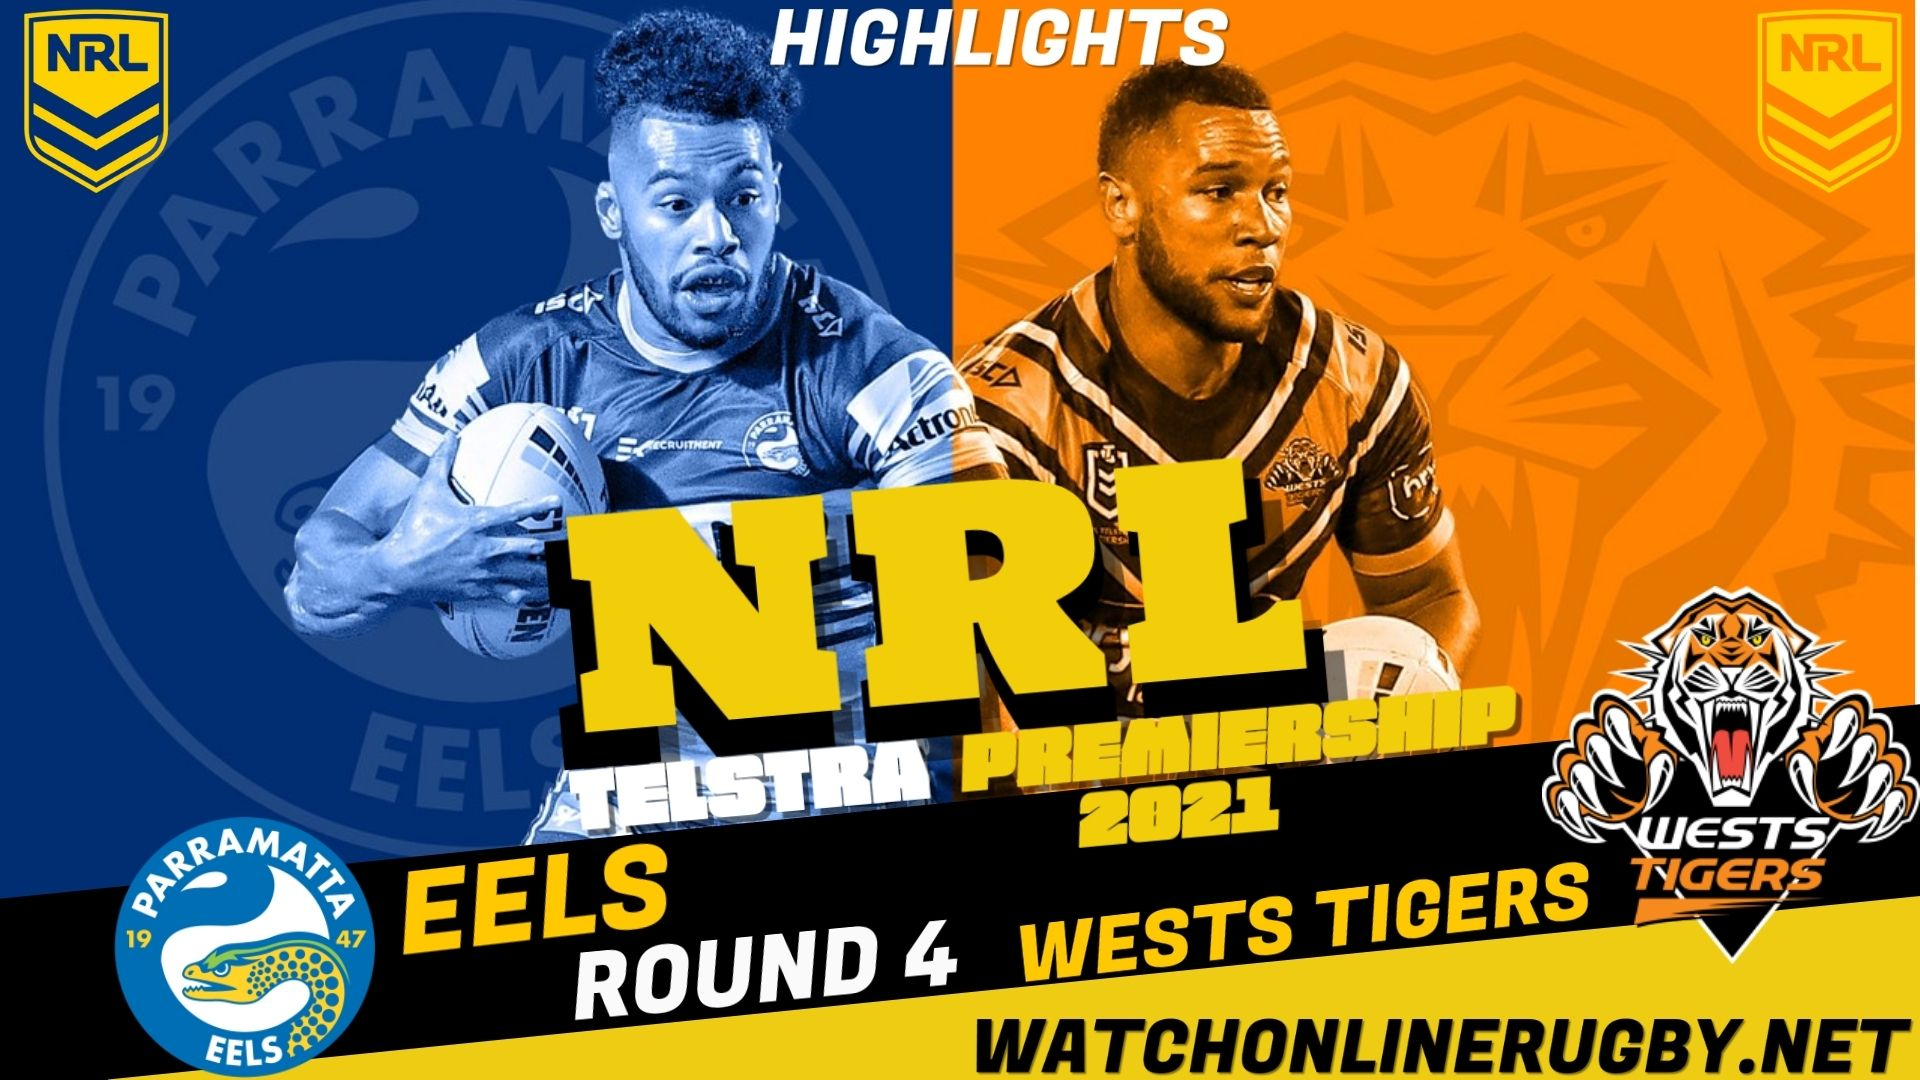 Wests Tigers Vs Eels Highlights RD 4 NRL Rugby